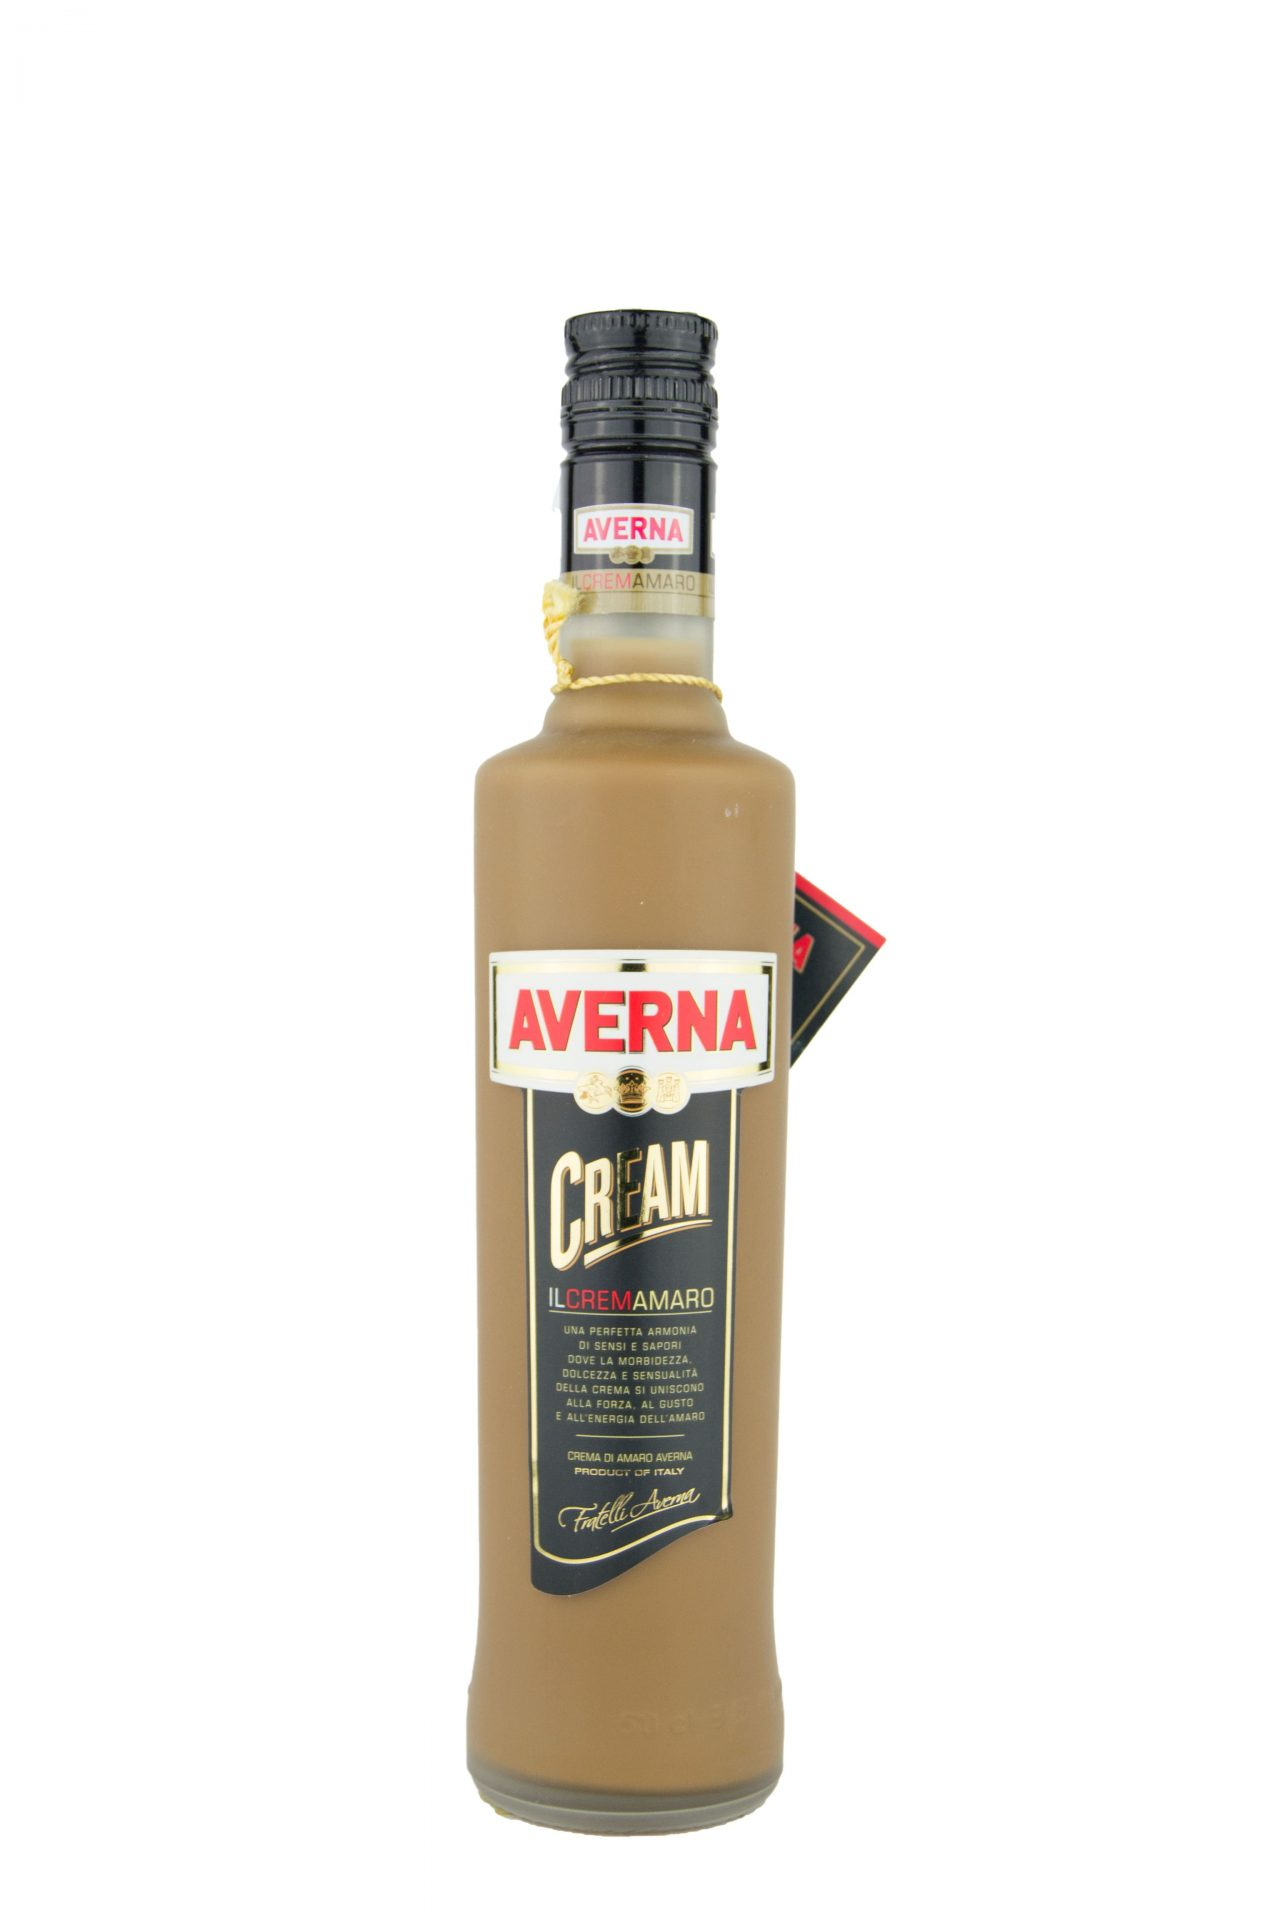 Averna – Cream